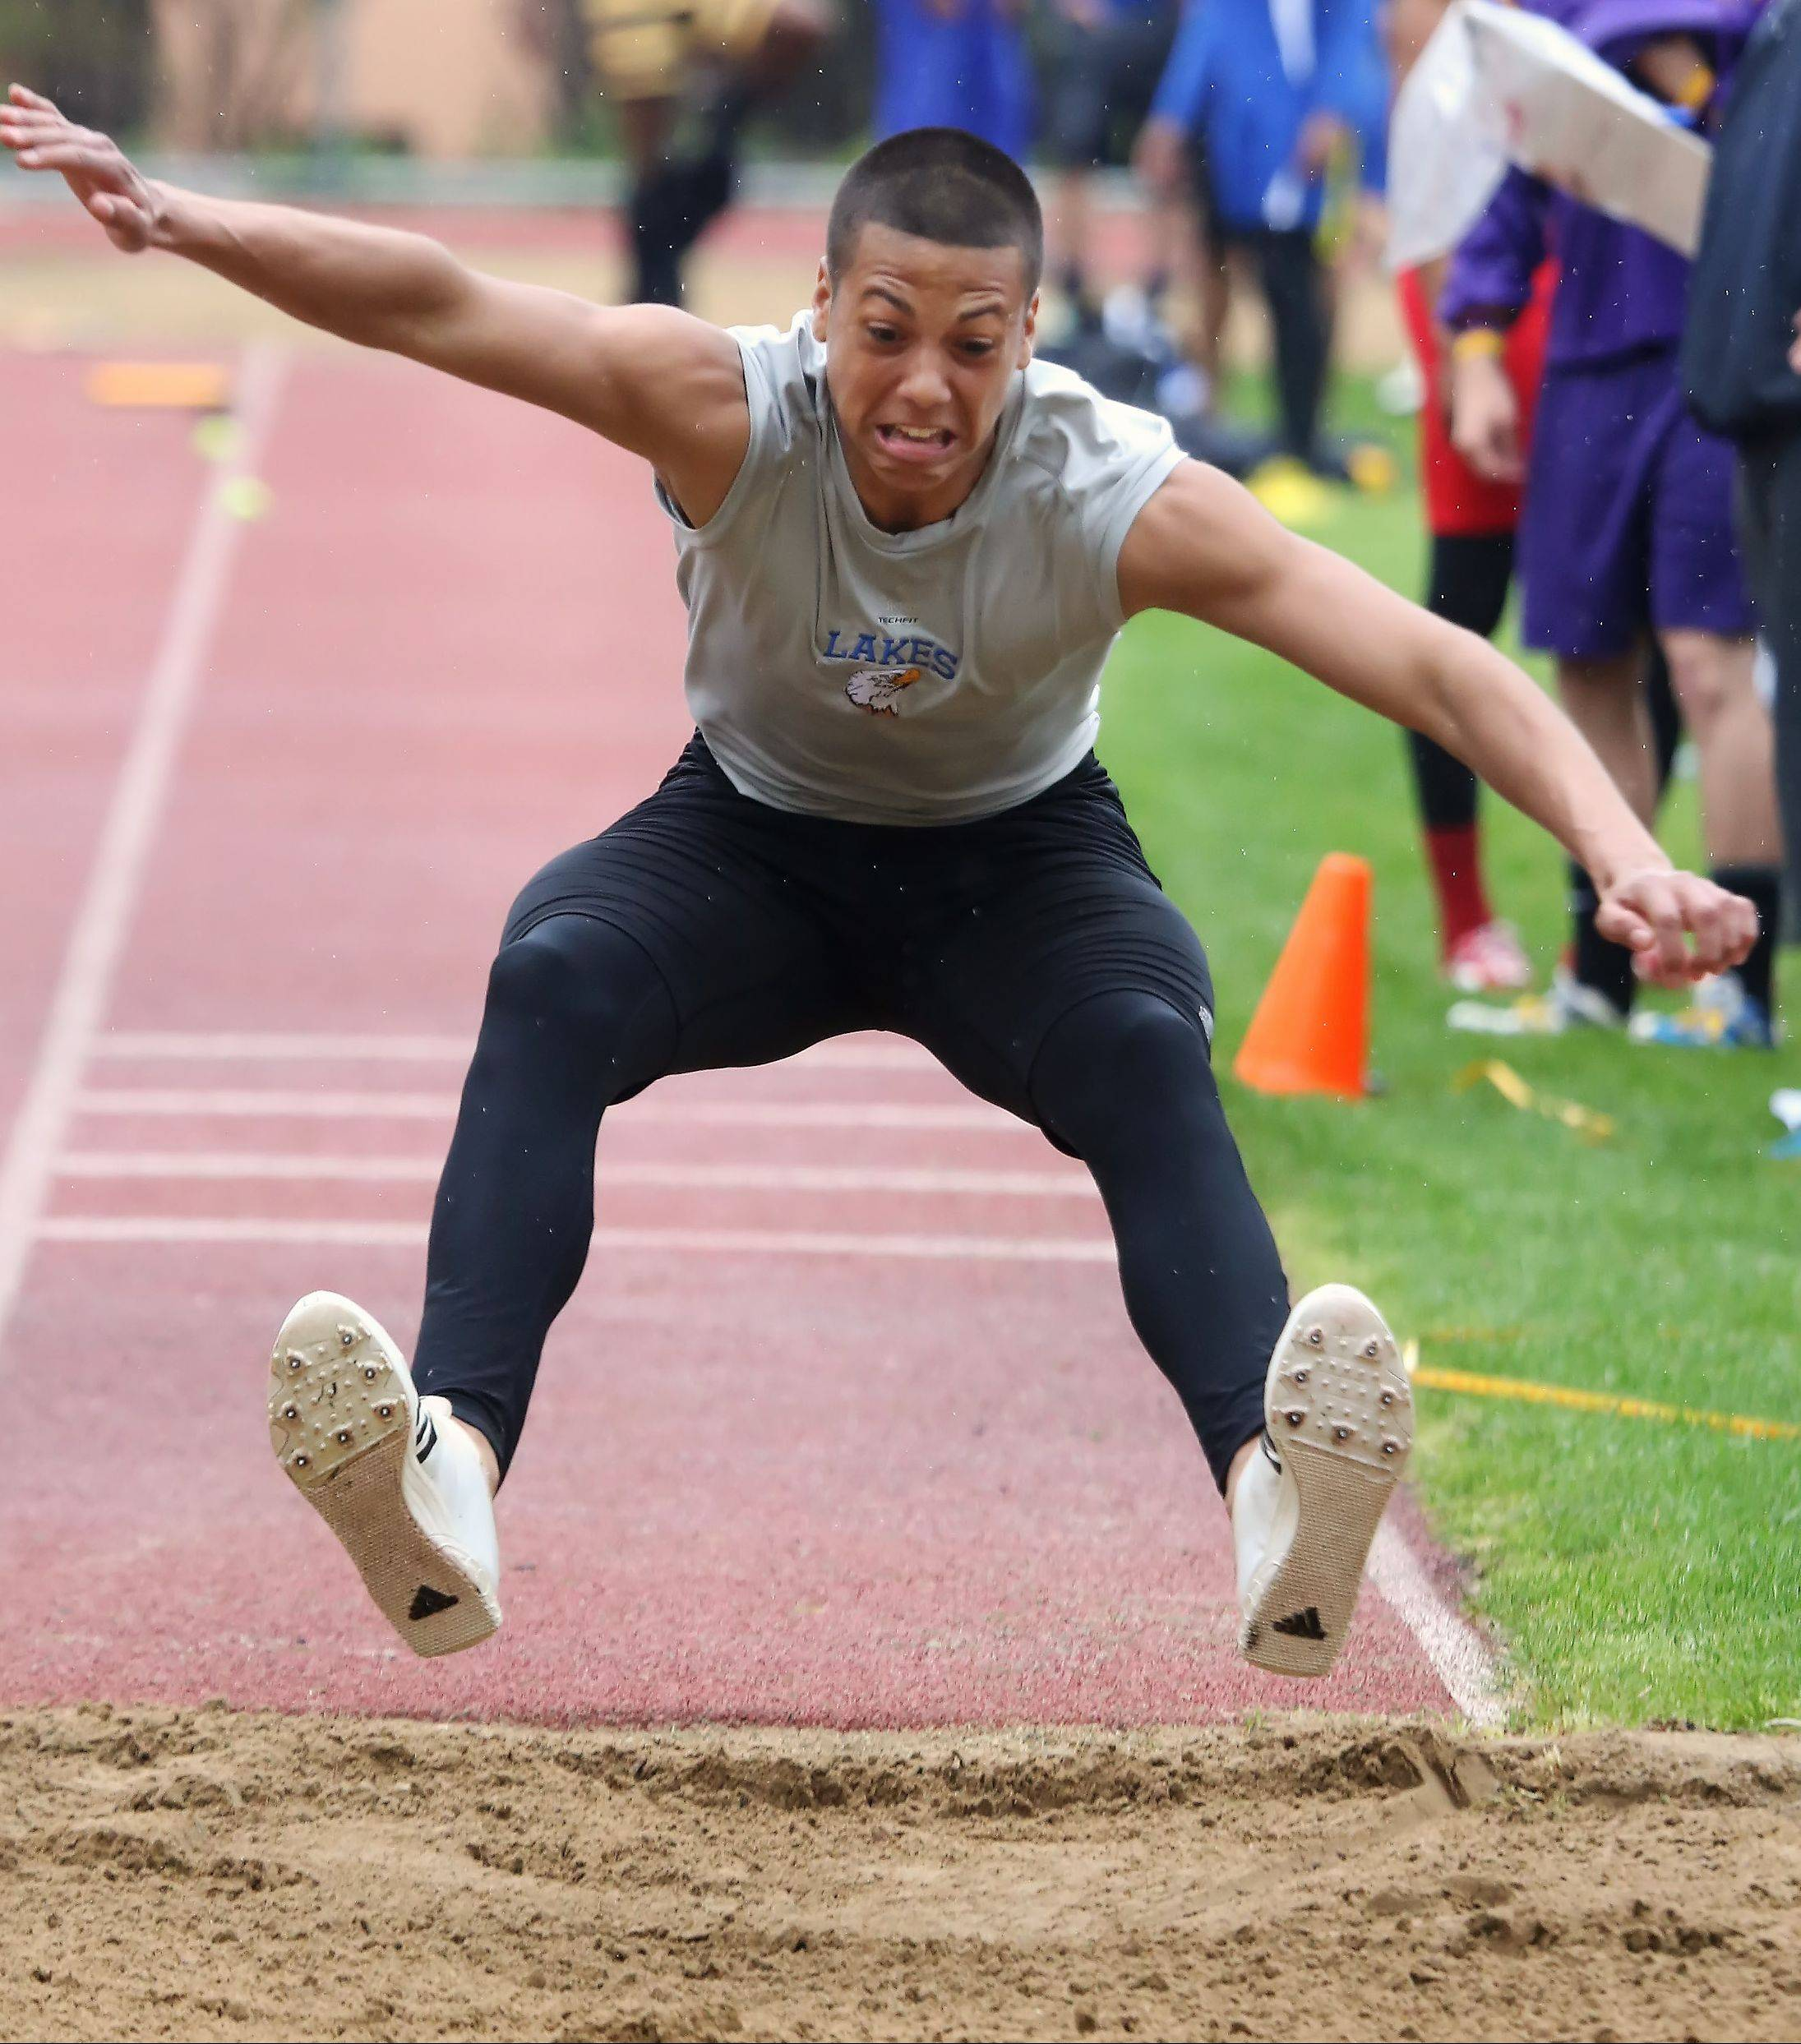 Lakes' Caleb Arnwine competes in the triple jump during the North Suburban Conference boys track meet Thursday at Libertyville High School